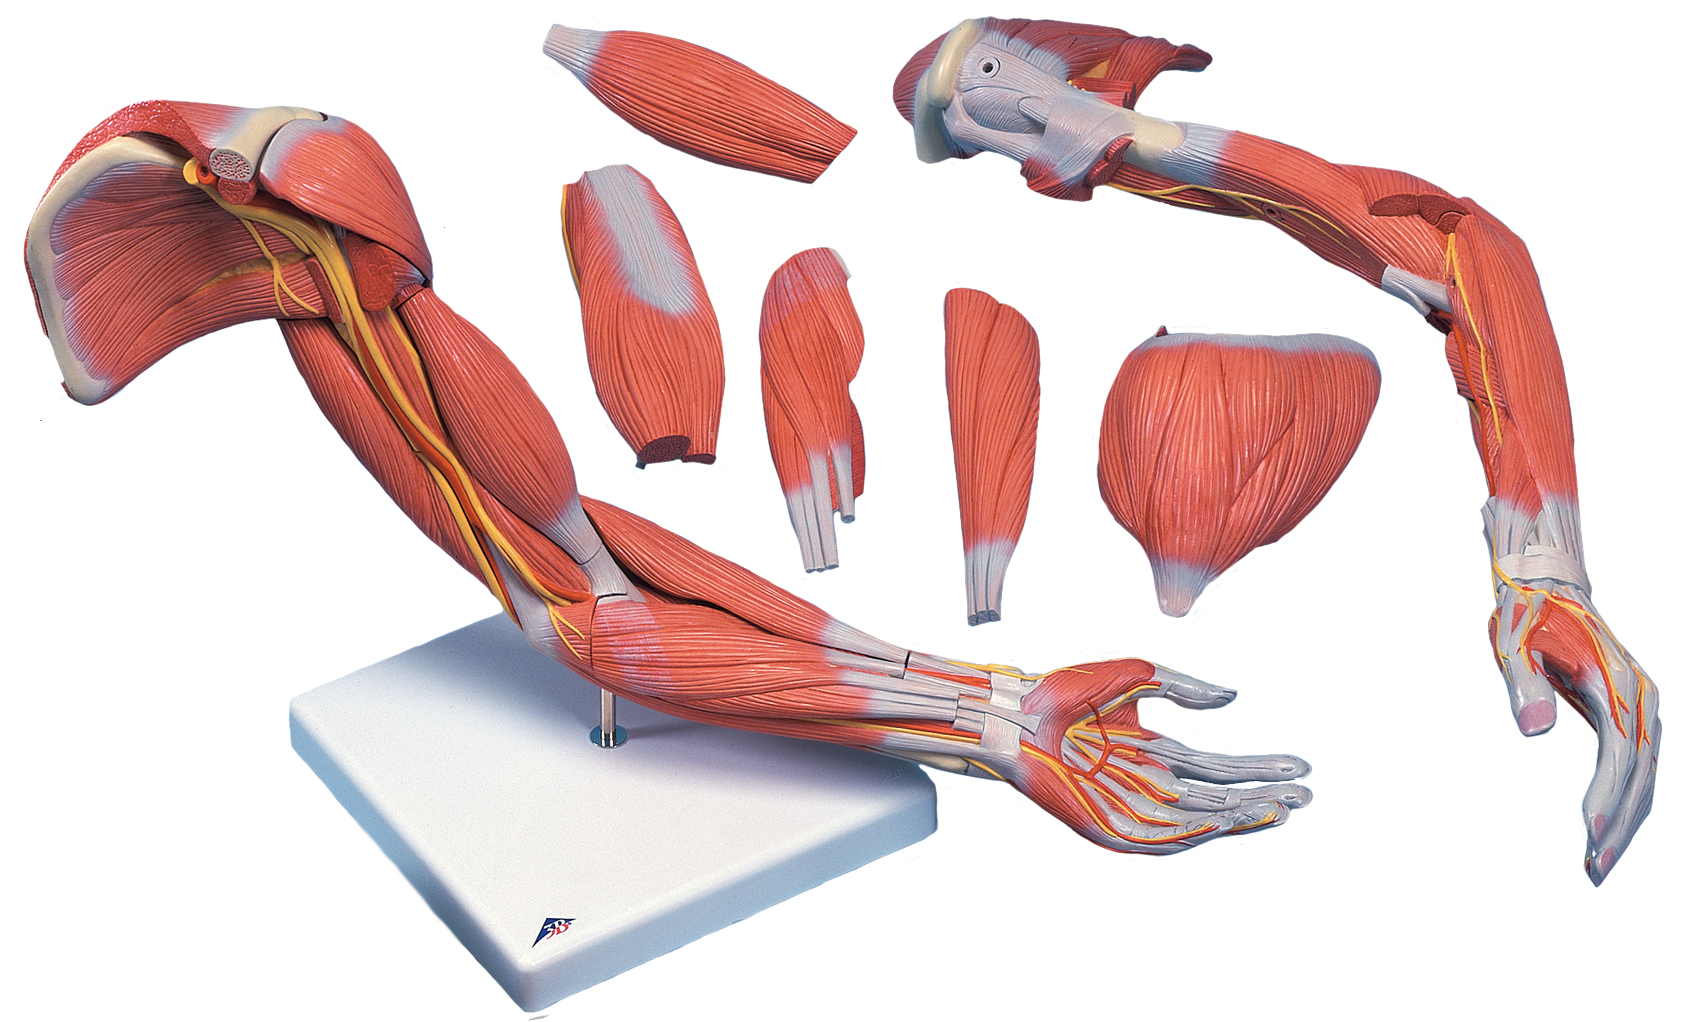 Arms muscle anatomy